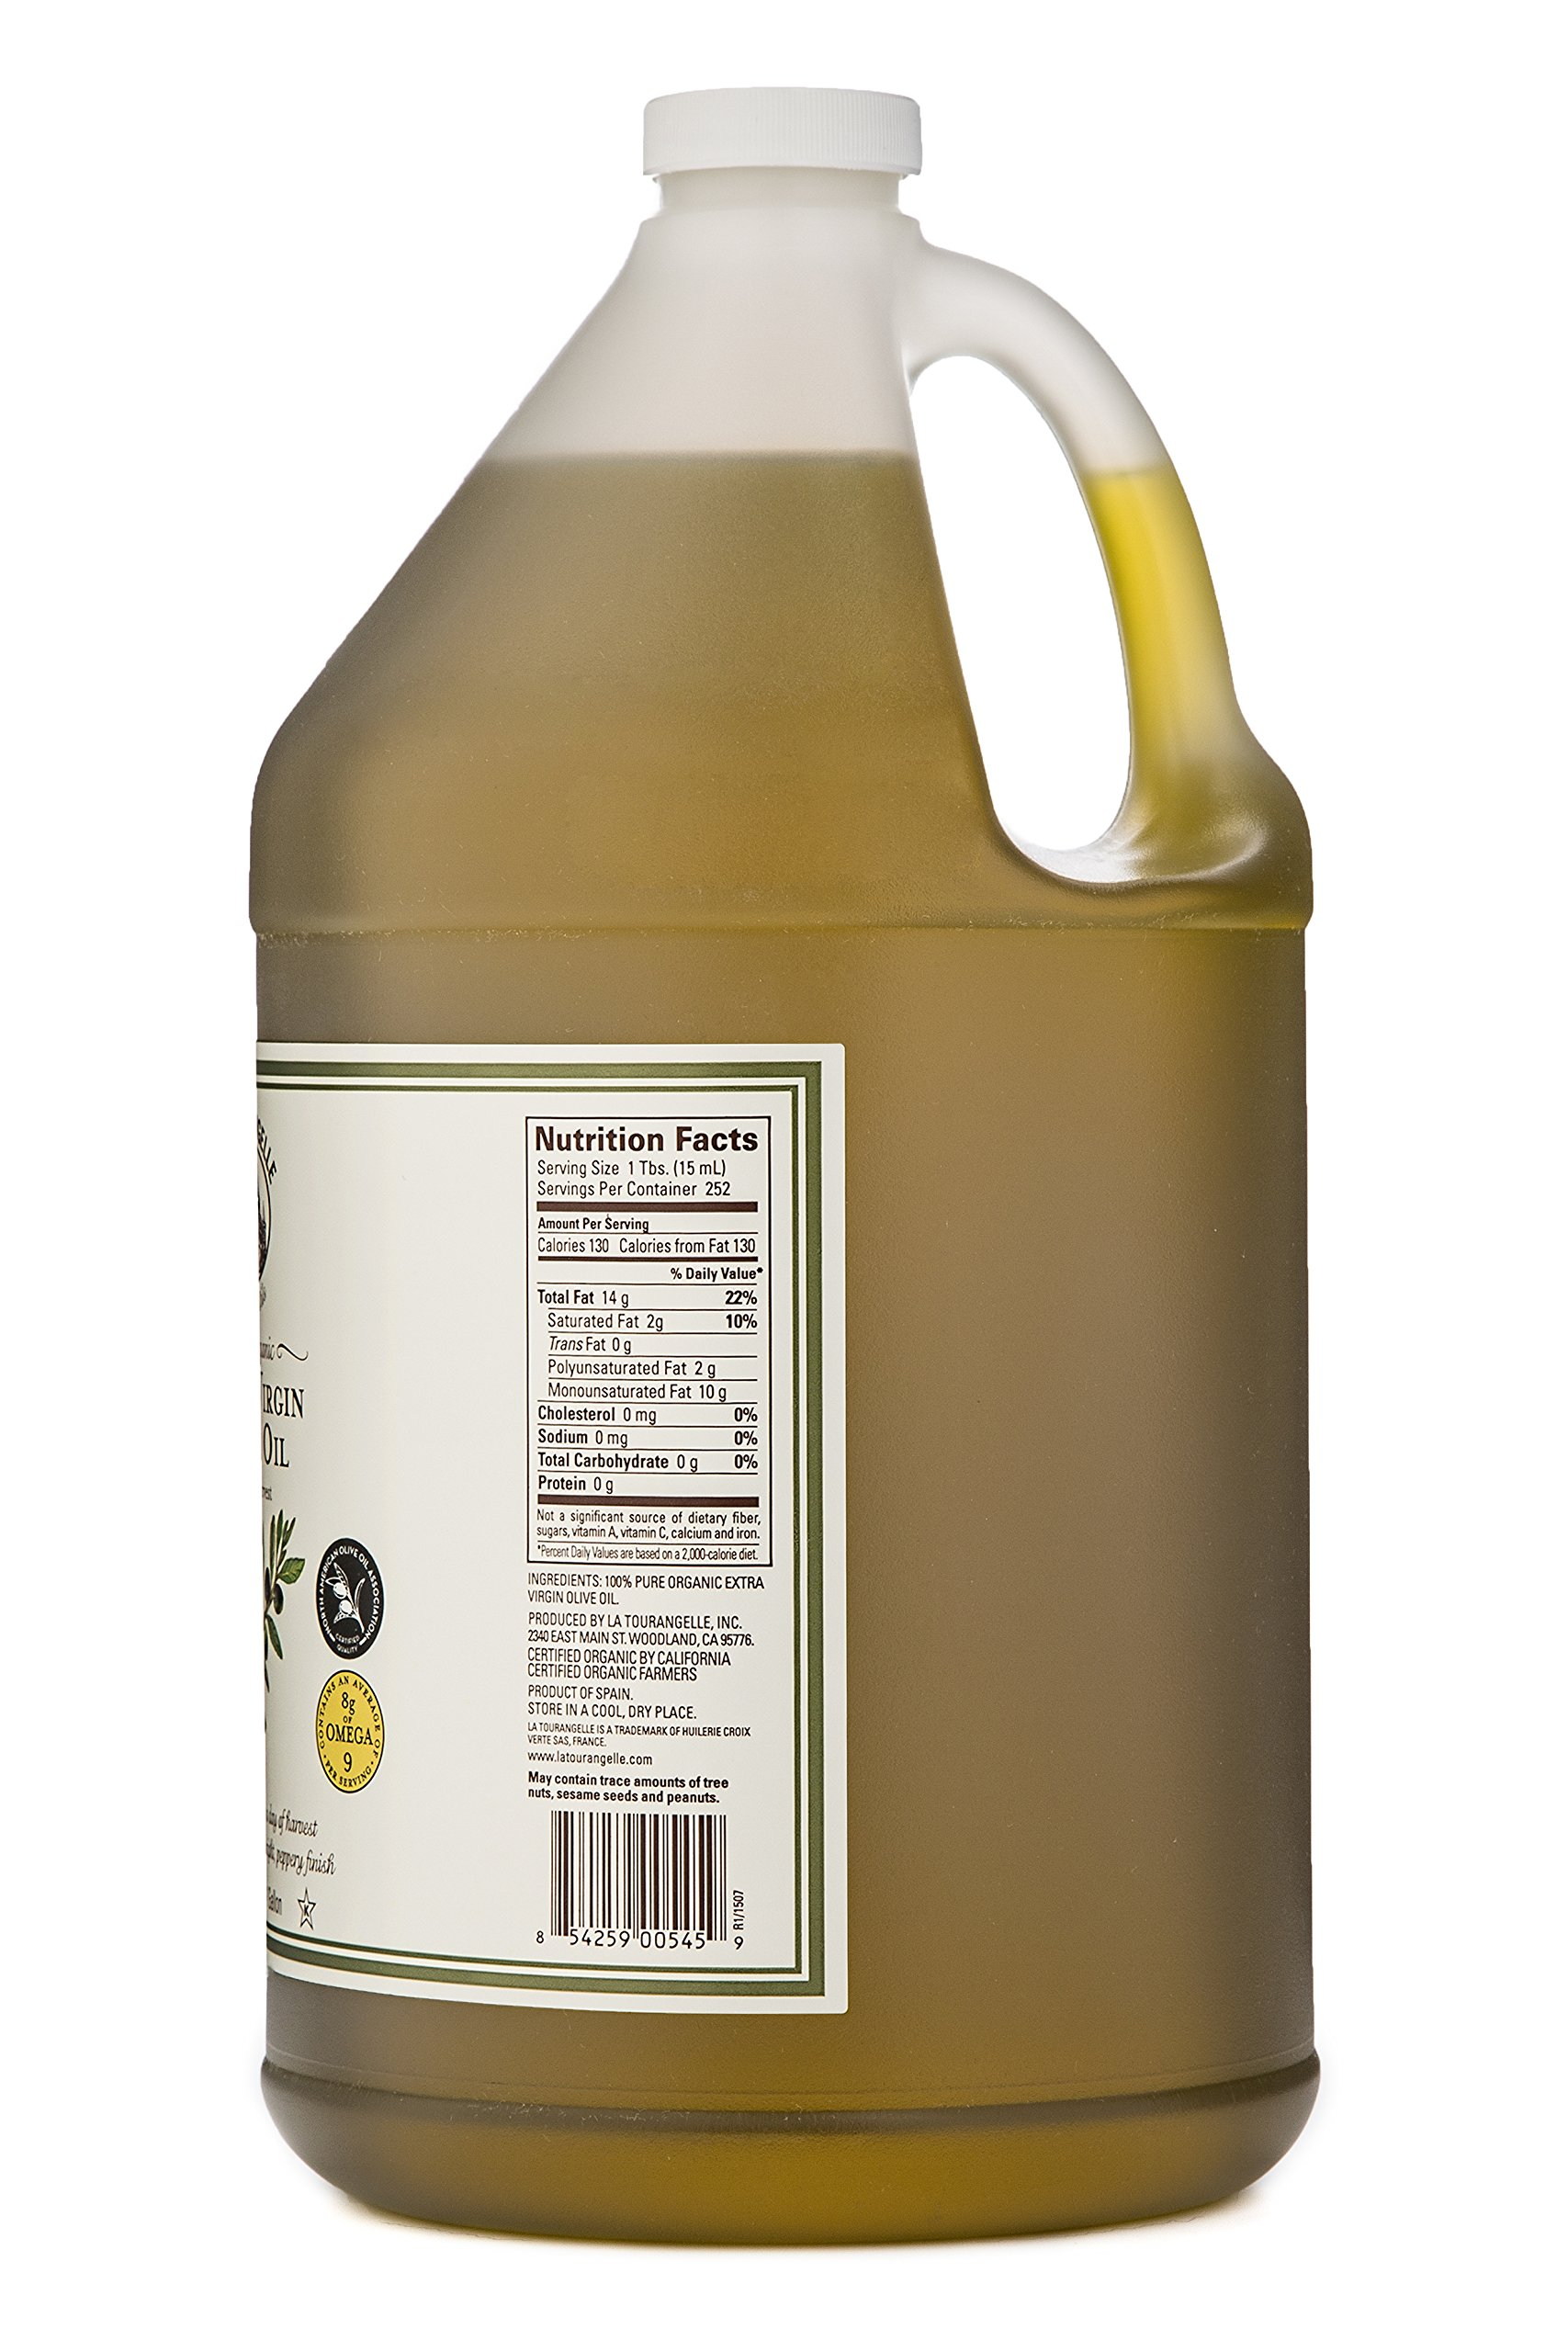 La Tourangelle Organic Extra Virgin Olive Oil 128 Fl. Oz., Organic Cold-Pressed Extra Virgin Olive Oil, All-Natural, Artisanal, Great for Cooking, Sauteing, and Dressing by La Tourangelle (Image #2)